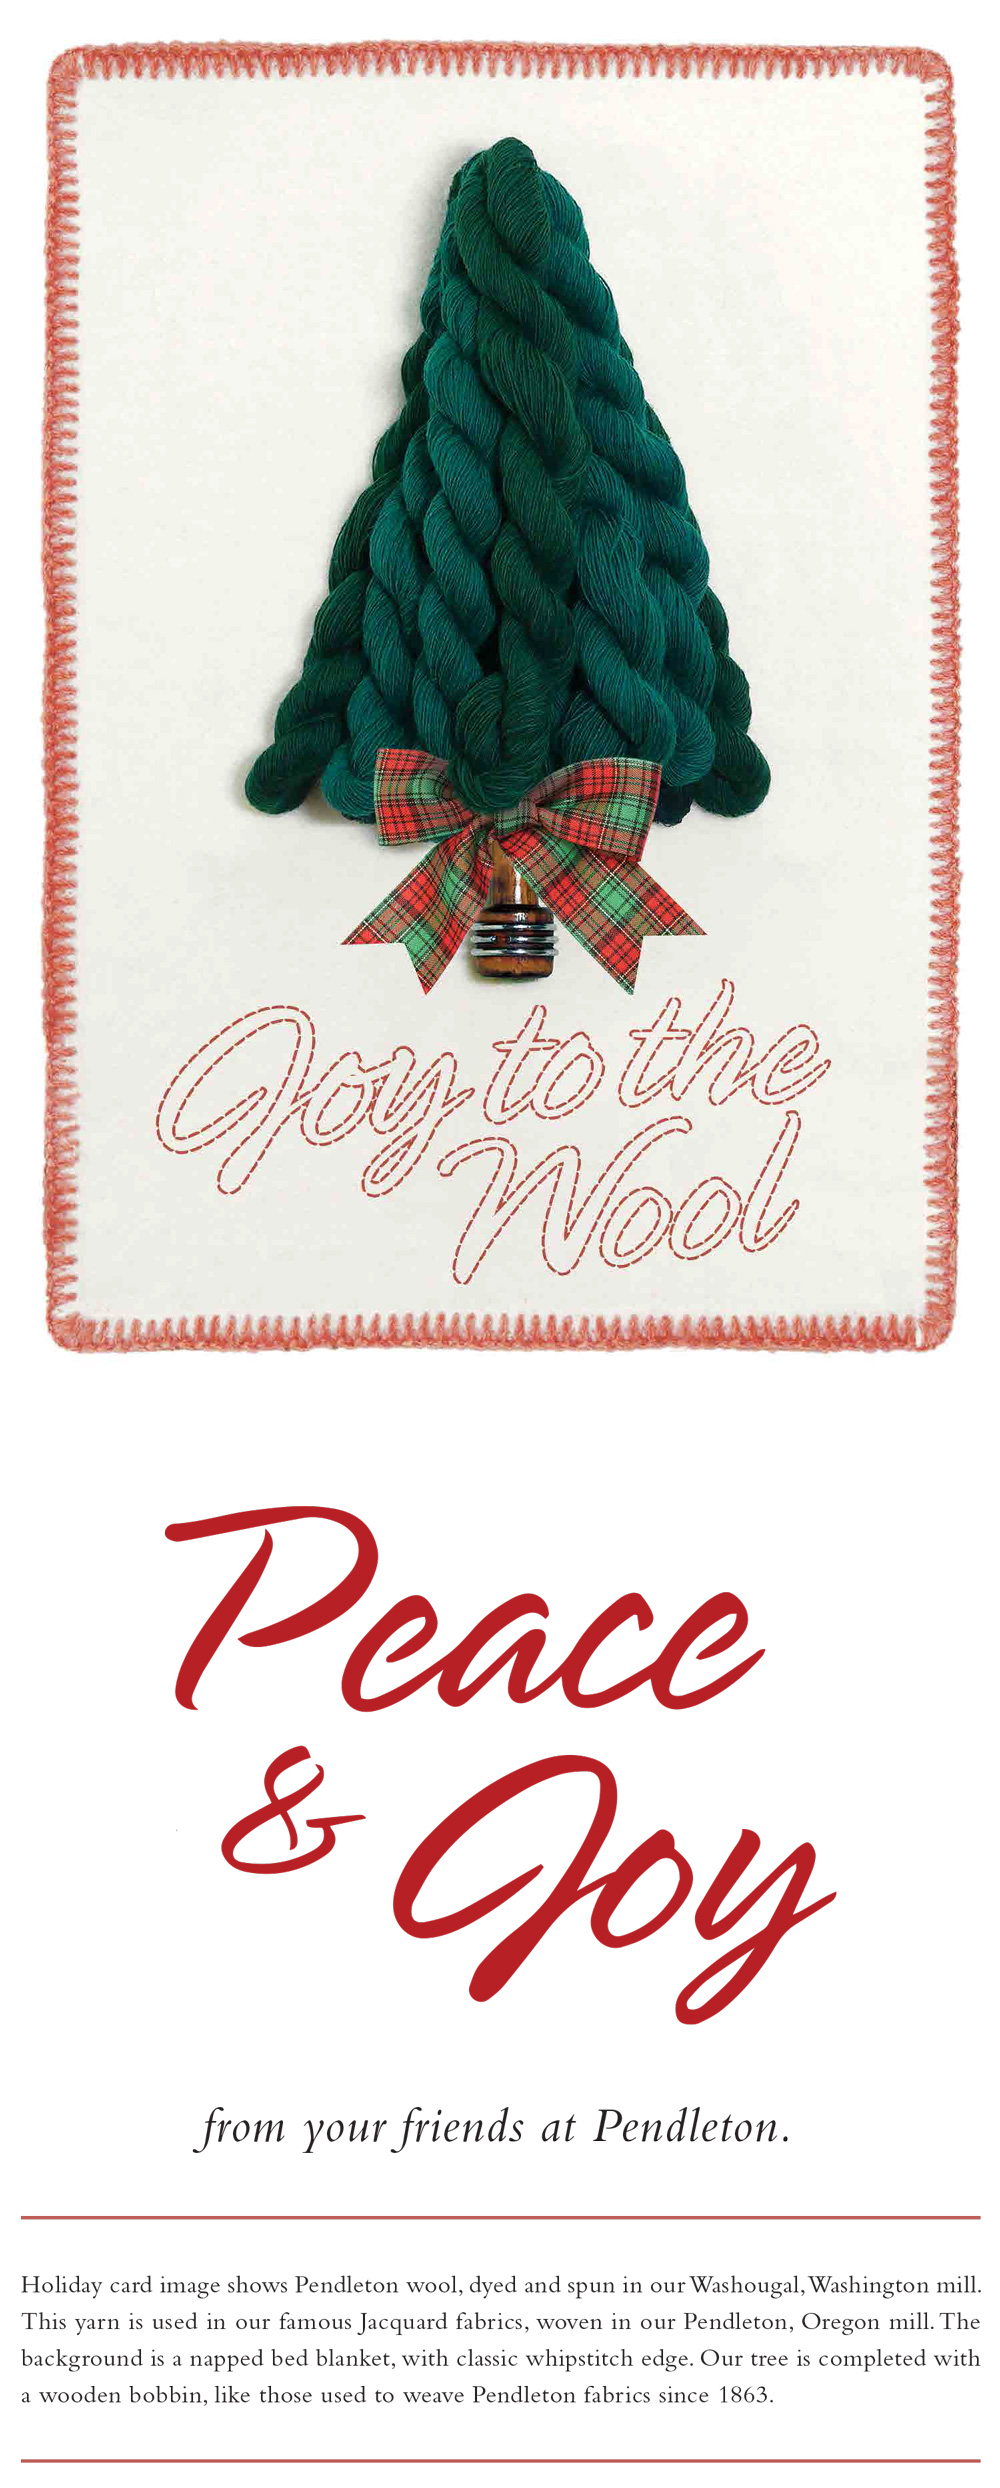 """General Holiday /Christmas Card with image of tree made from Pendleton wool, and the words, """"Peace and Joy from your friends at Pendleton"""""""